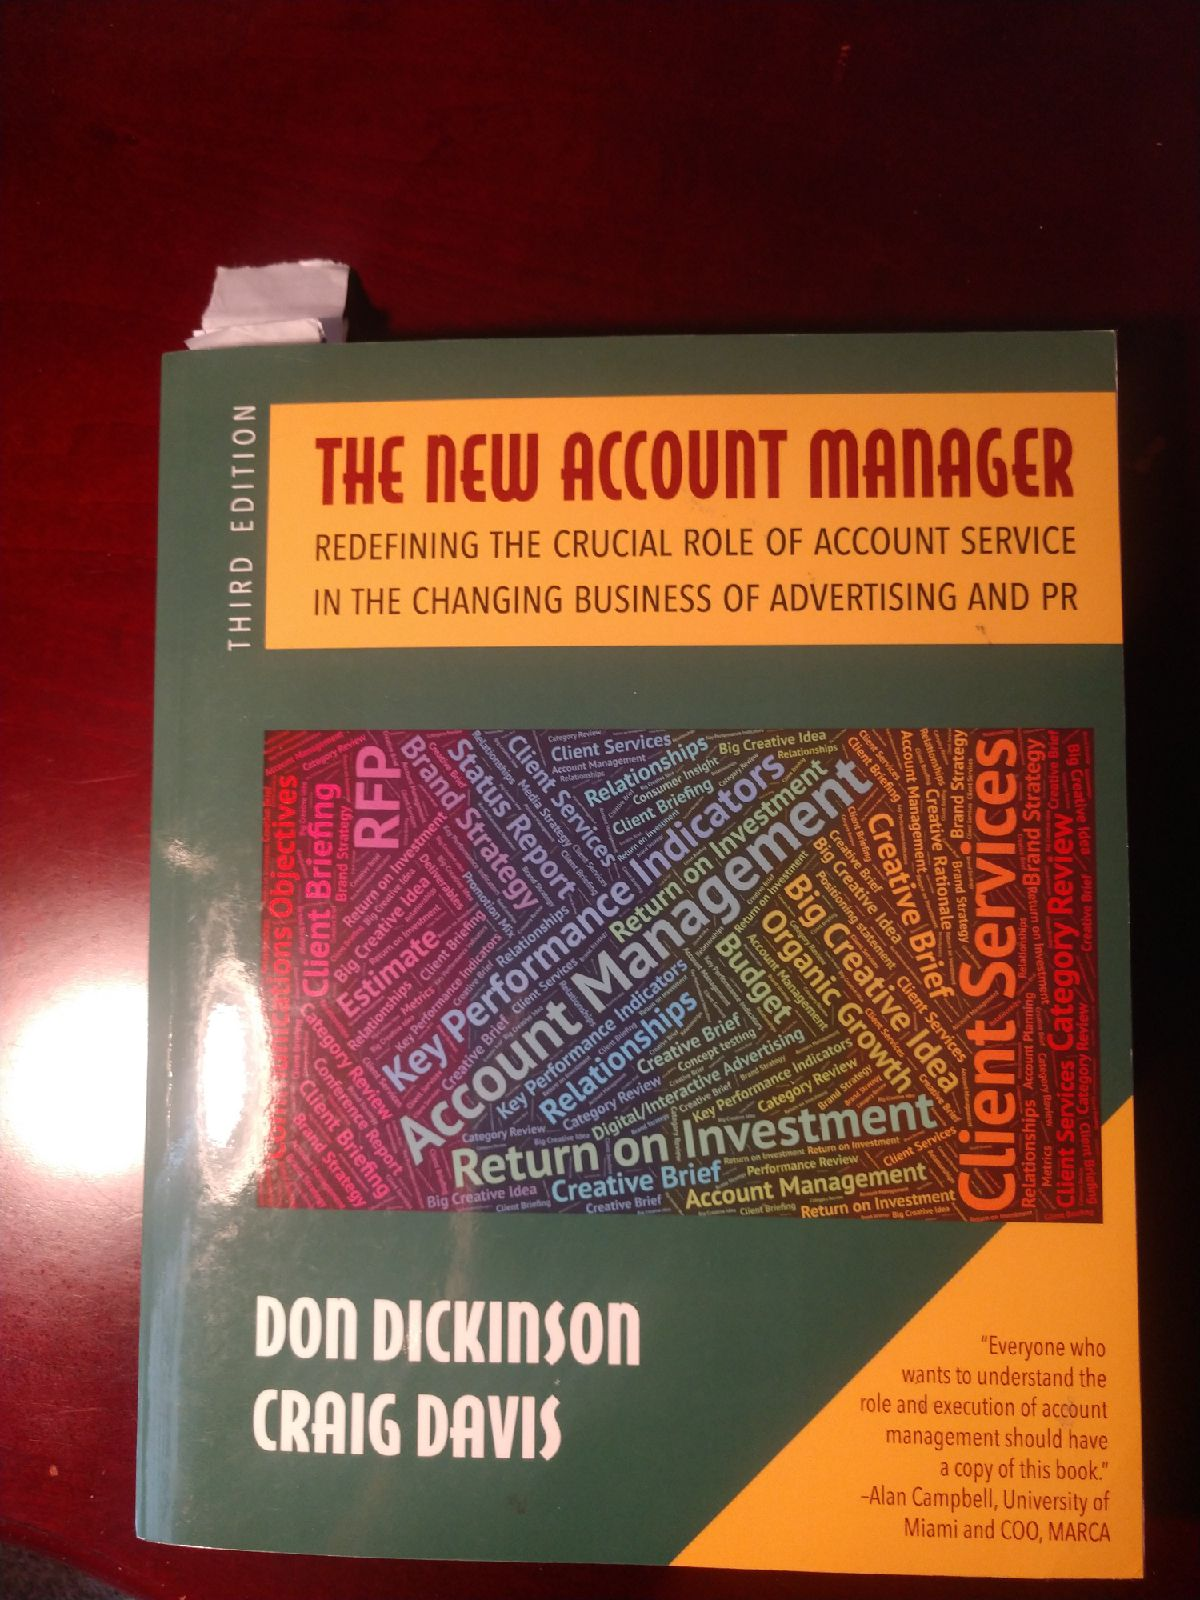 Book - The new account manager